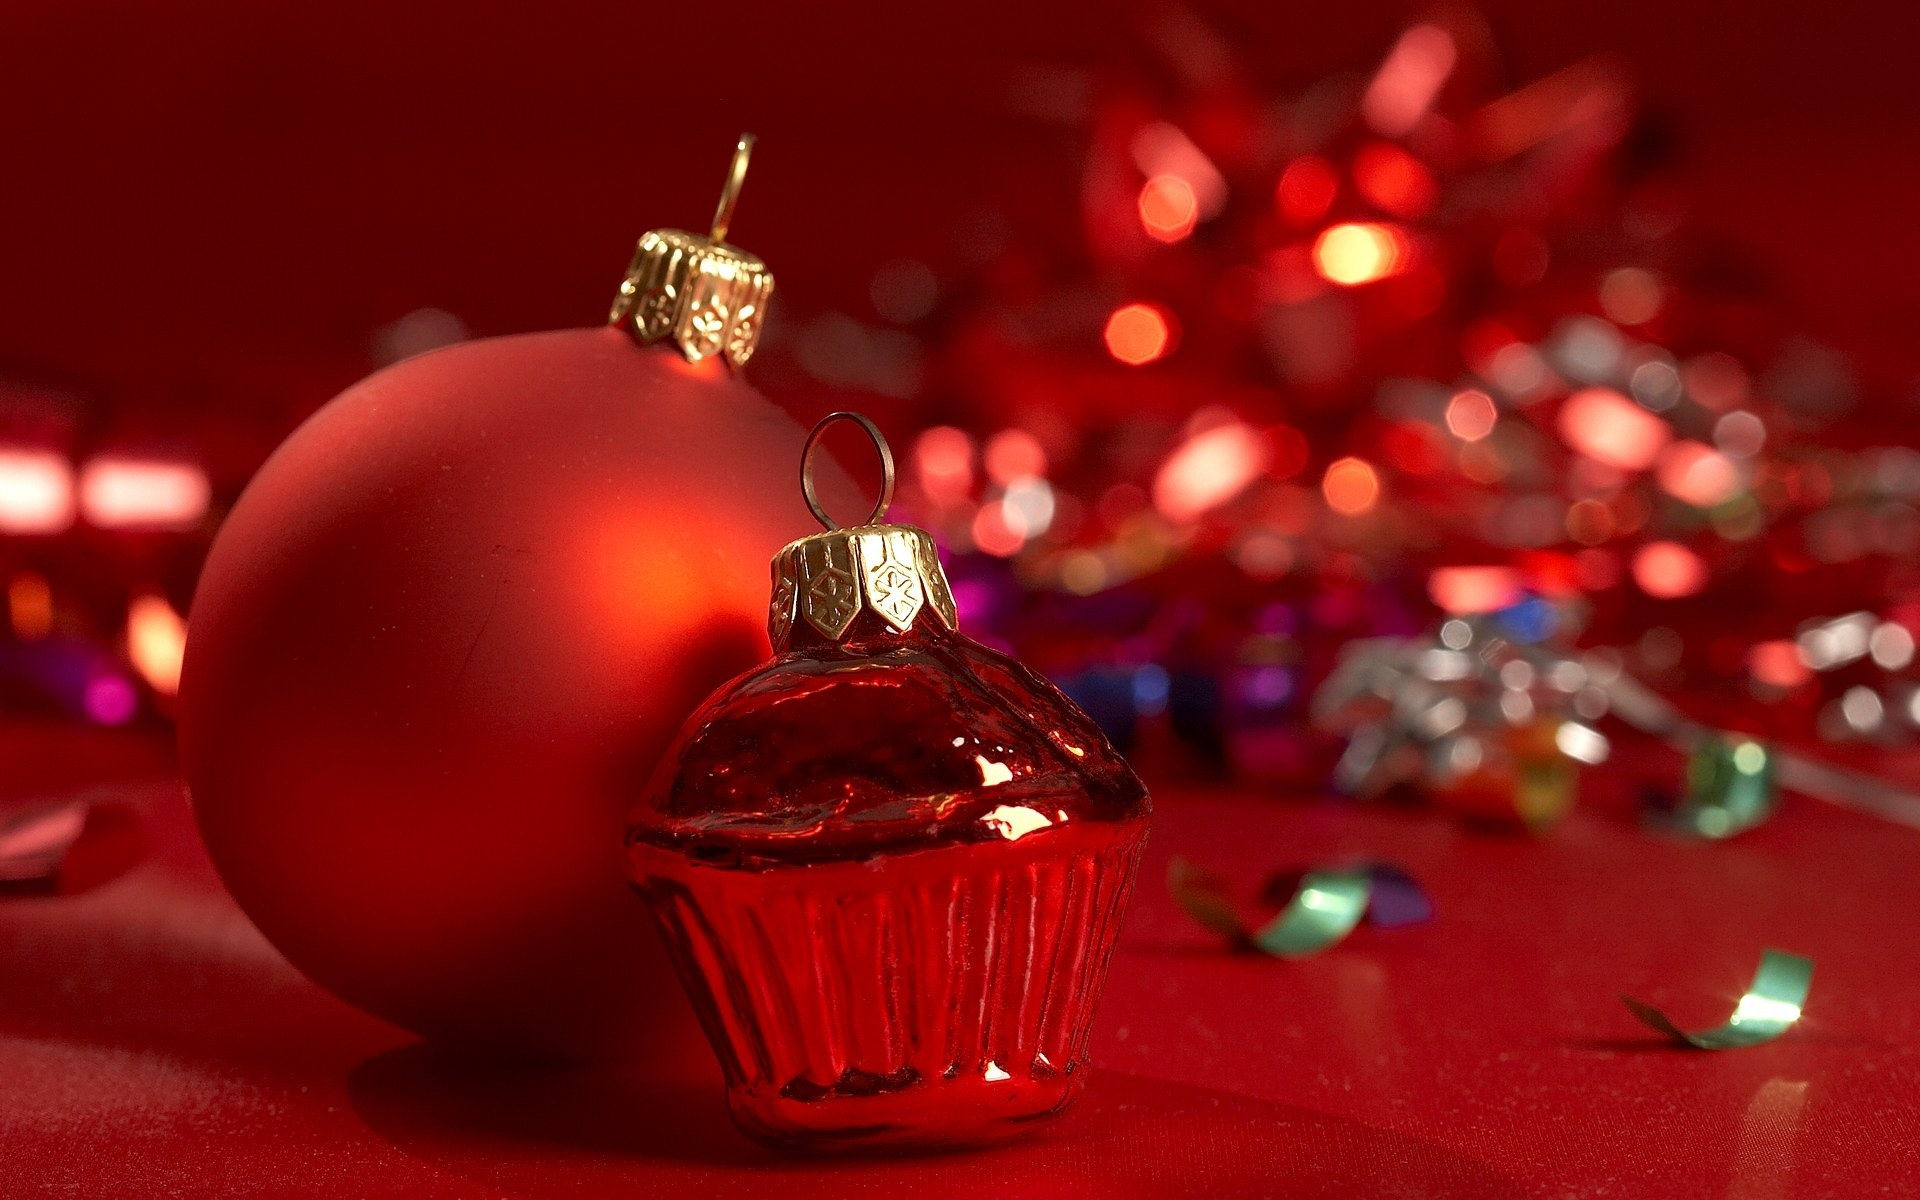 Red Christmas tree decorations wallpapers and images 1920x1200